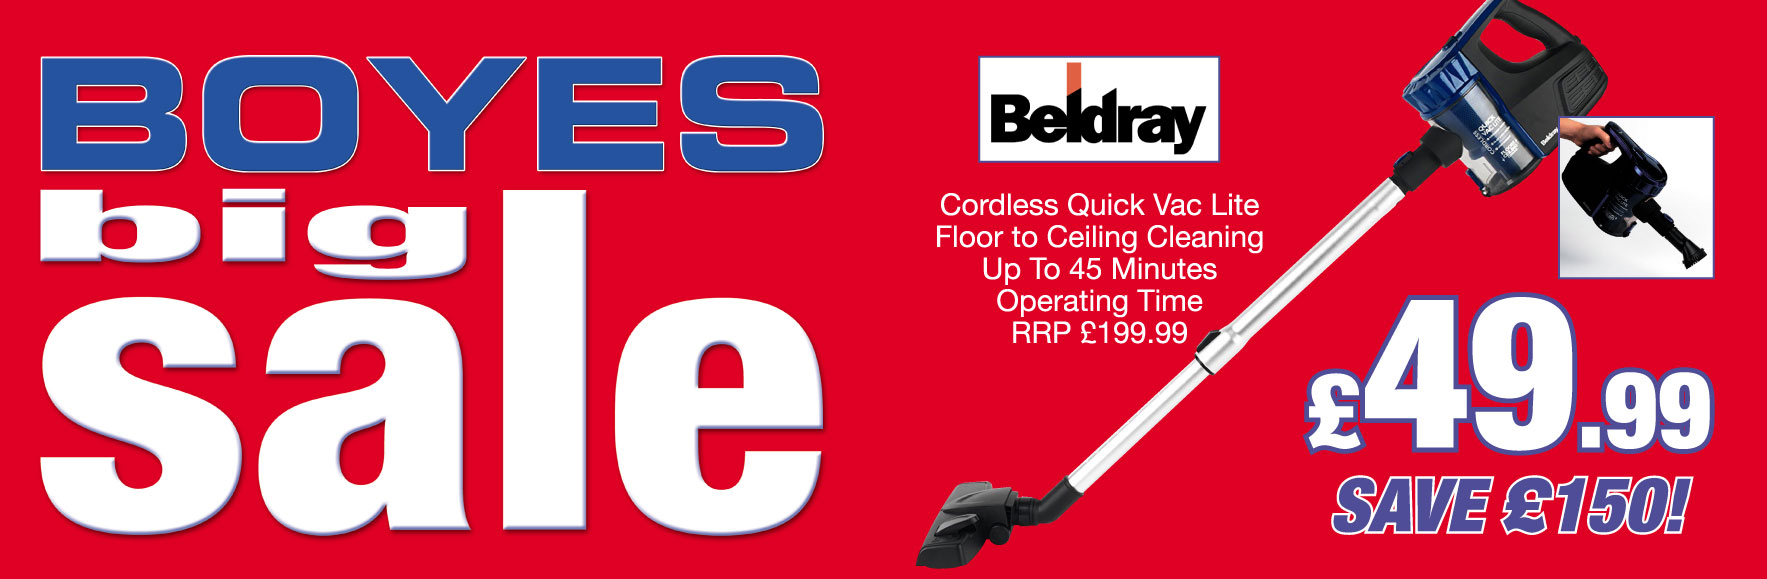 Beldray Cordless Quick Vac Lite. RRP £199.99. ONLY £49.99. Save £150!